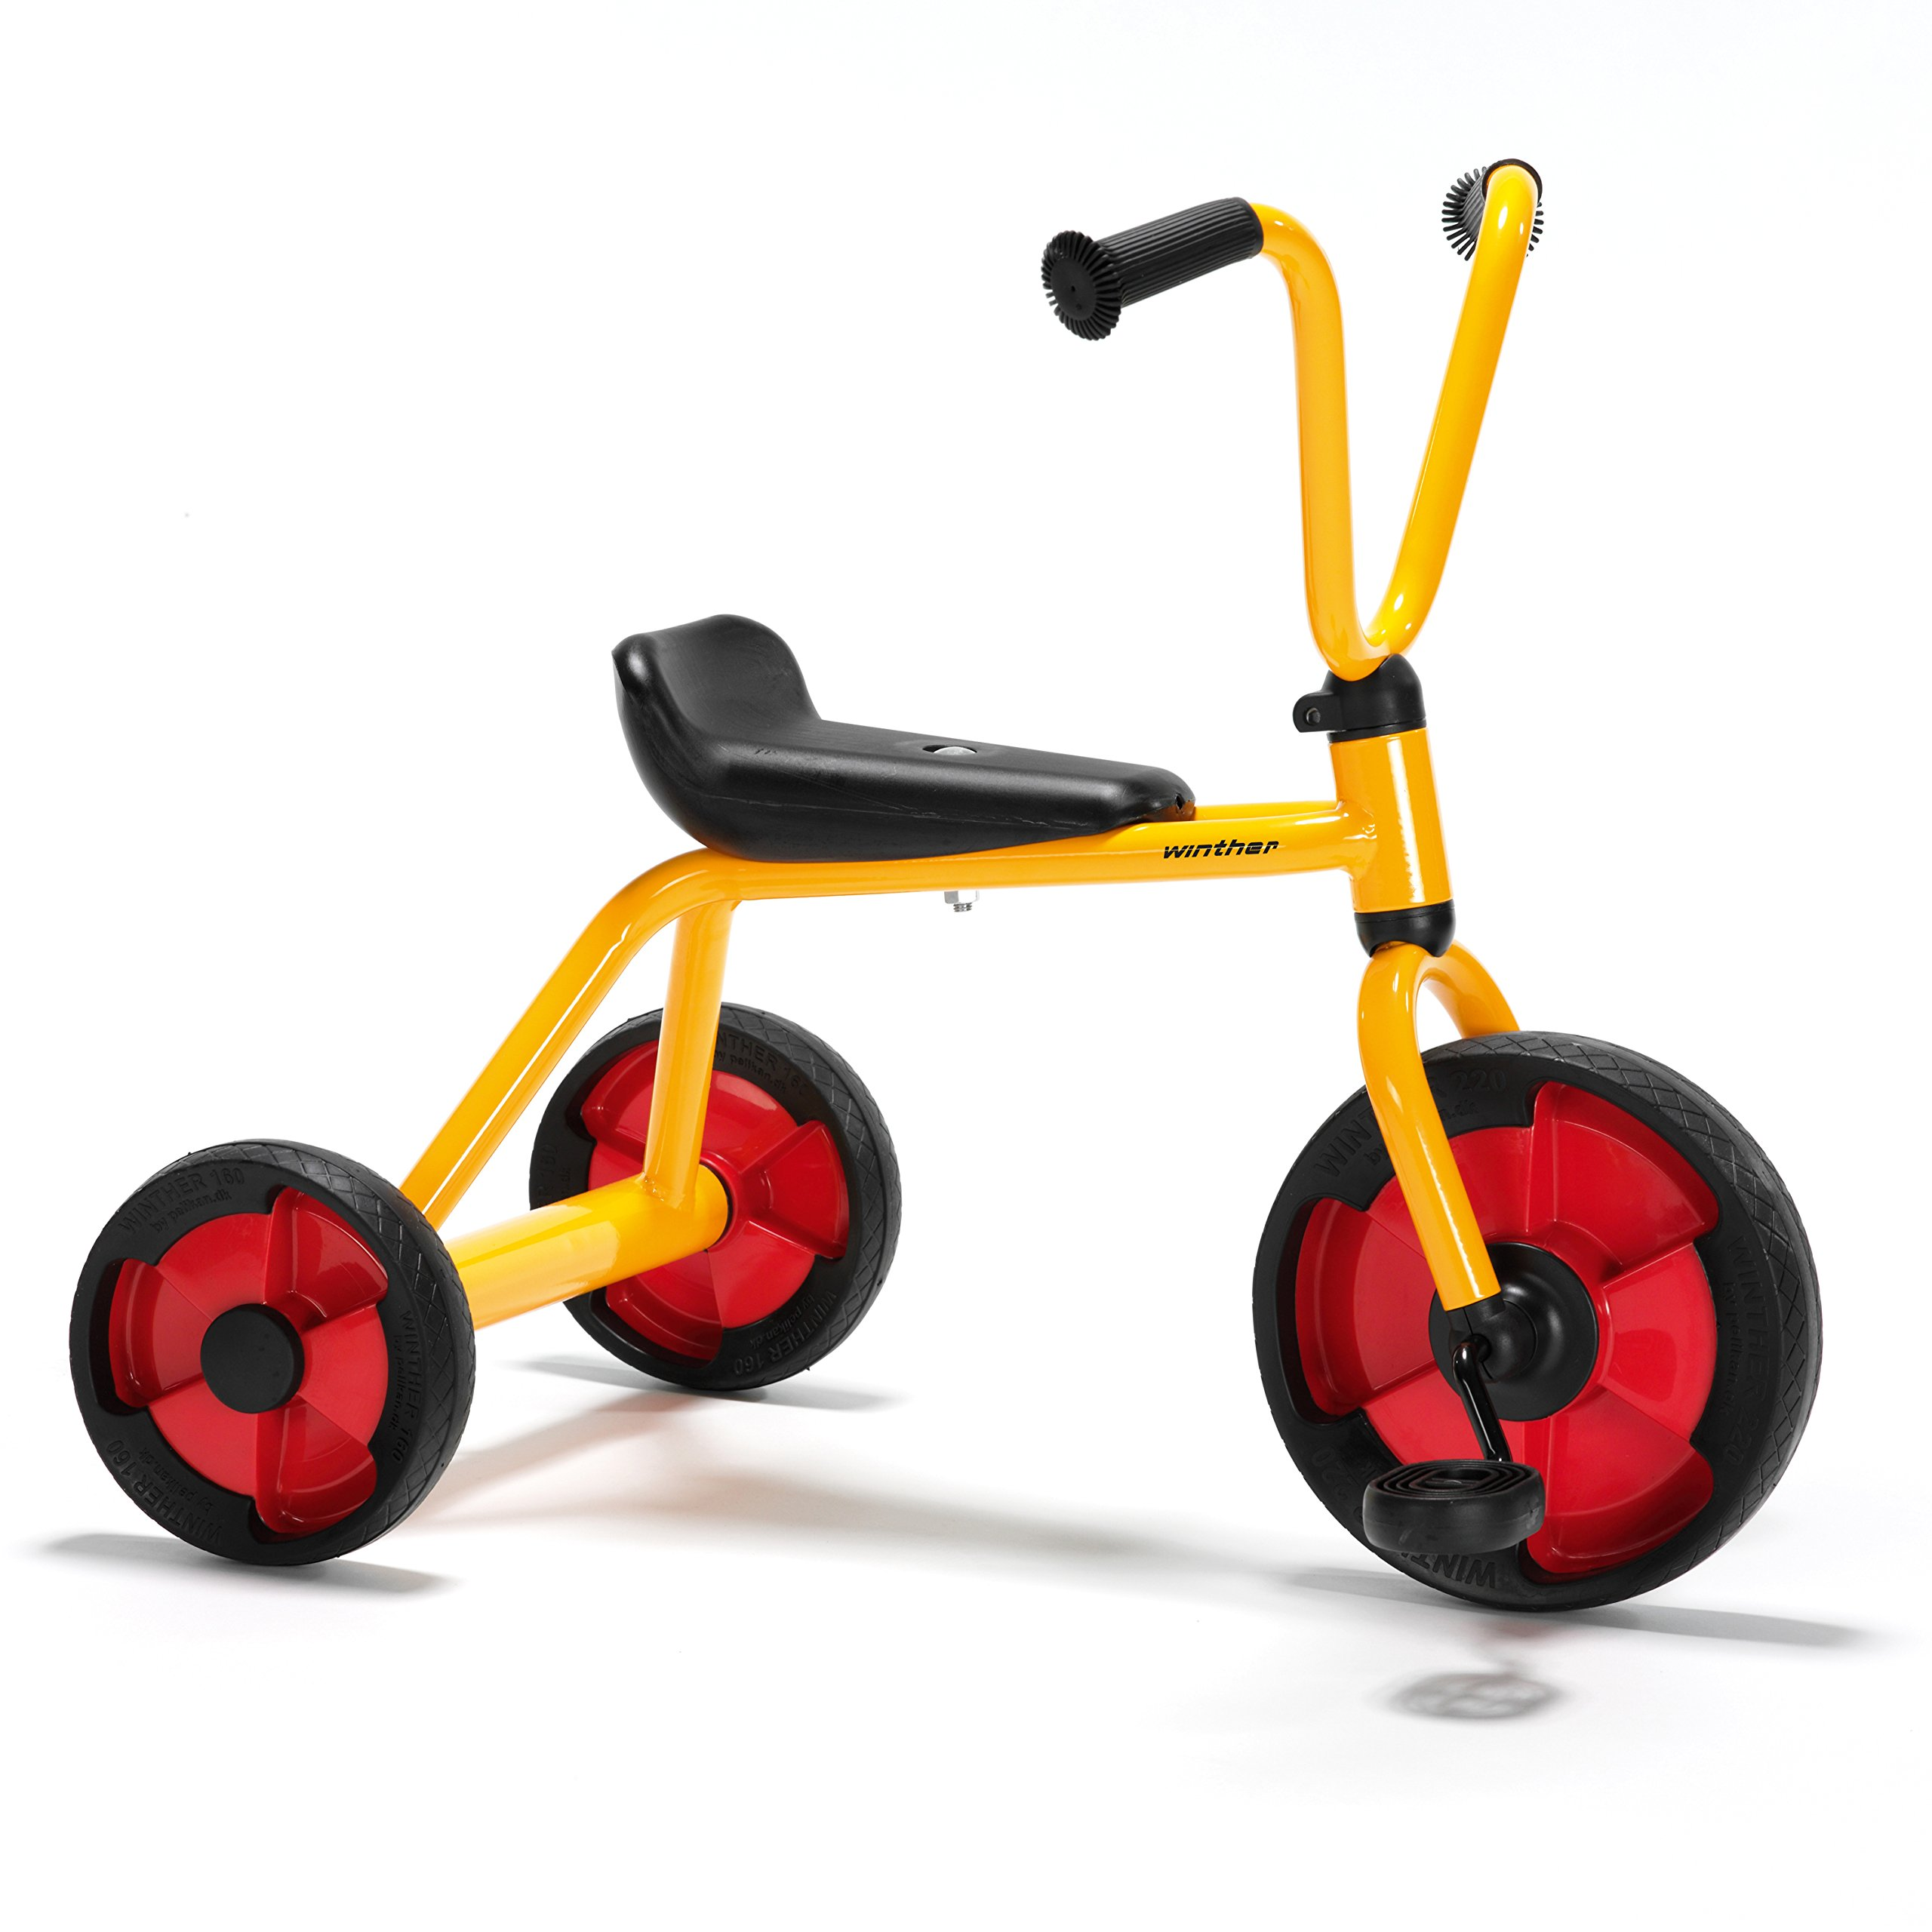 Winther WIN582 Tricycle Grade Kindergarten to 1, 10.63'' Height, 16.93'' Wide, 21.06'' Length